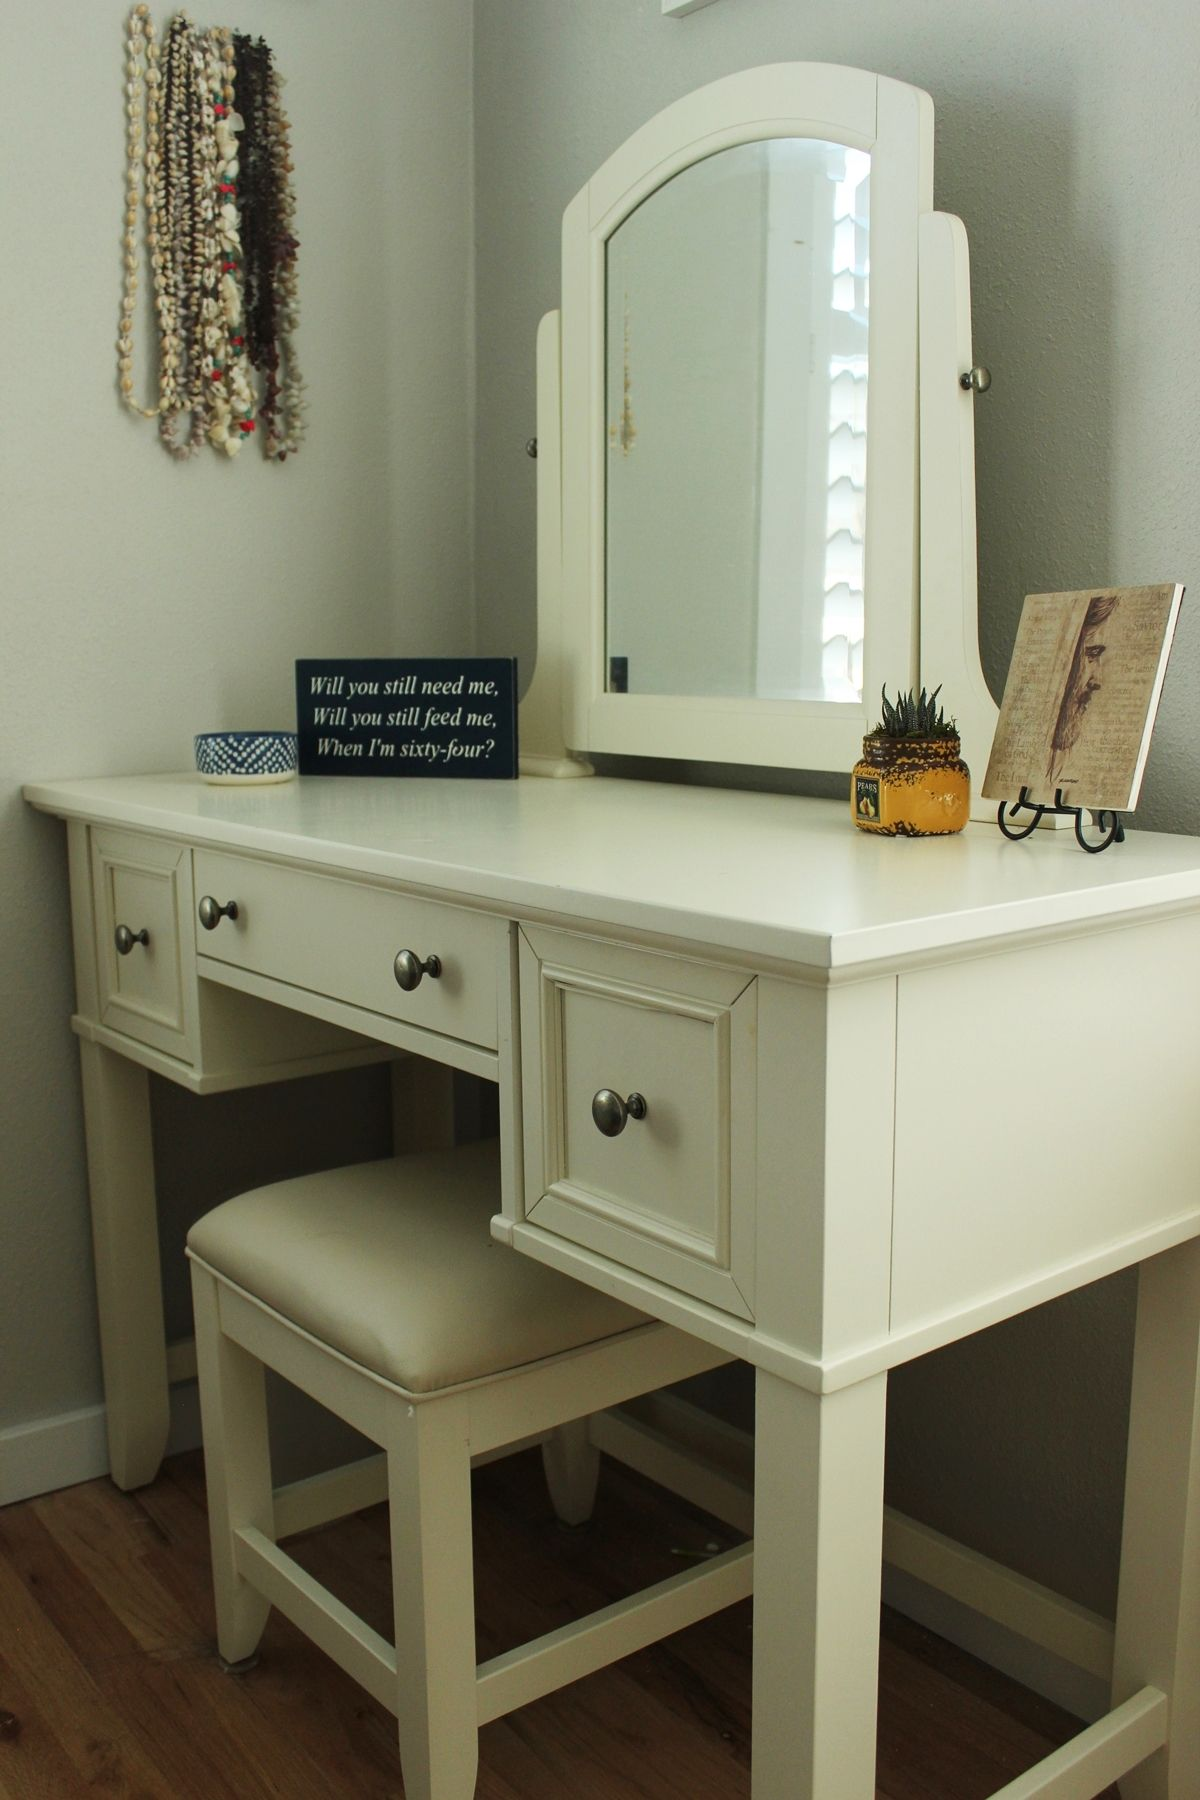 Bedroom with white vanity